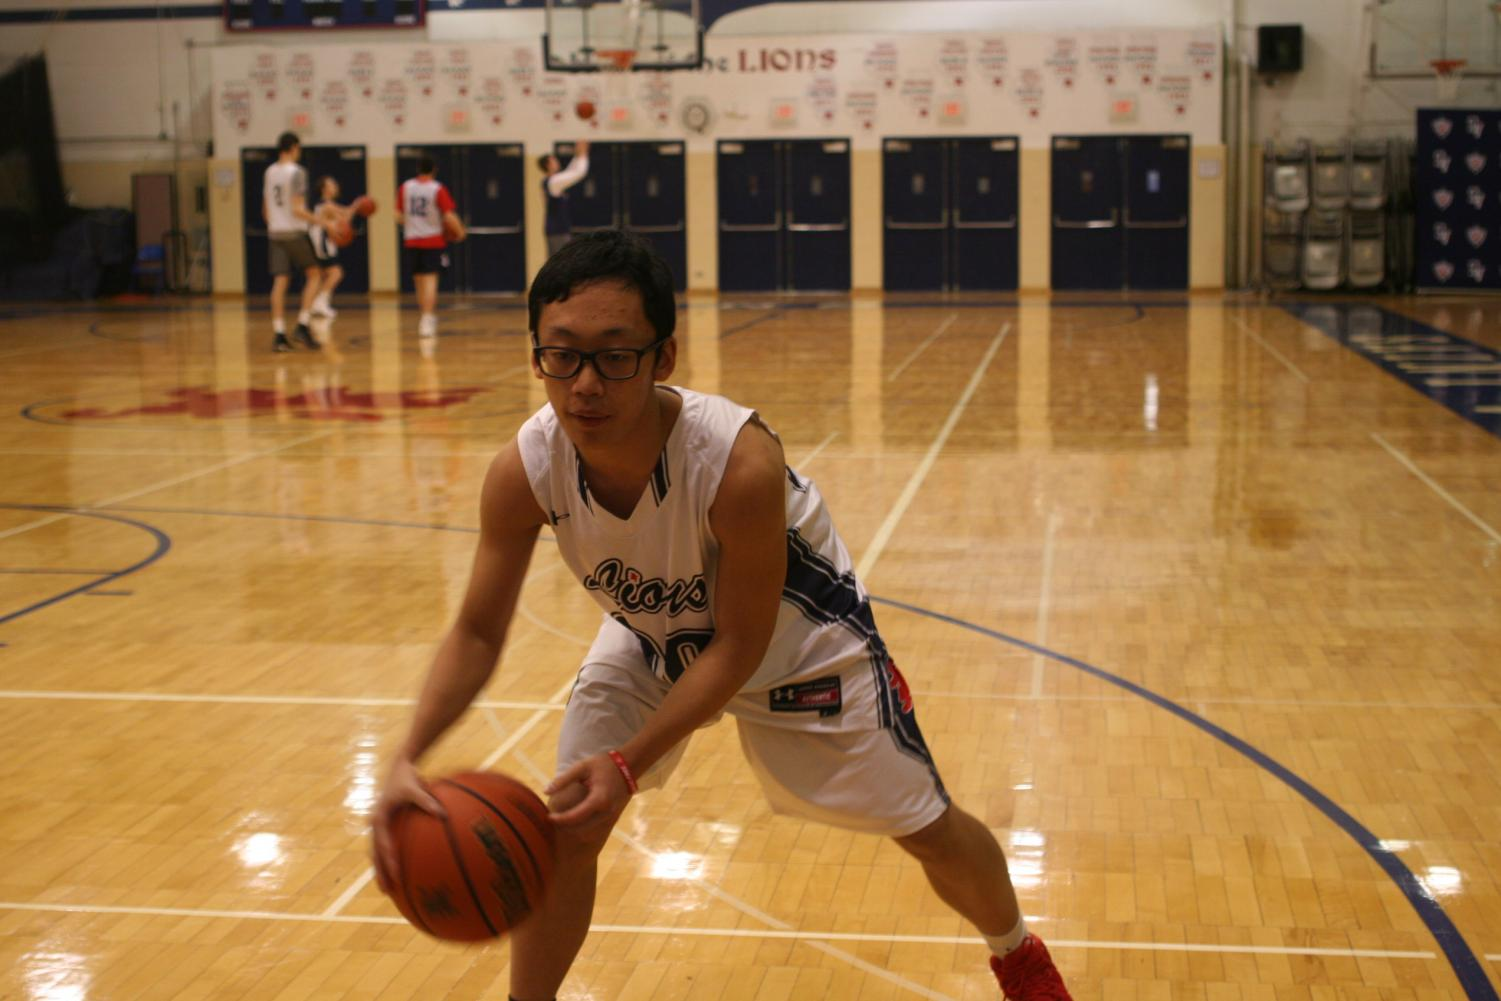 International senior Bill Huang practices his dribbling during his basketball practice.